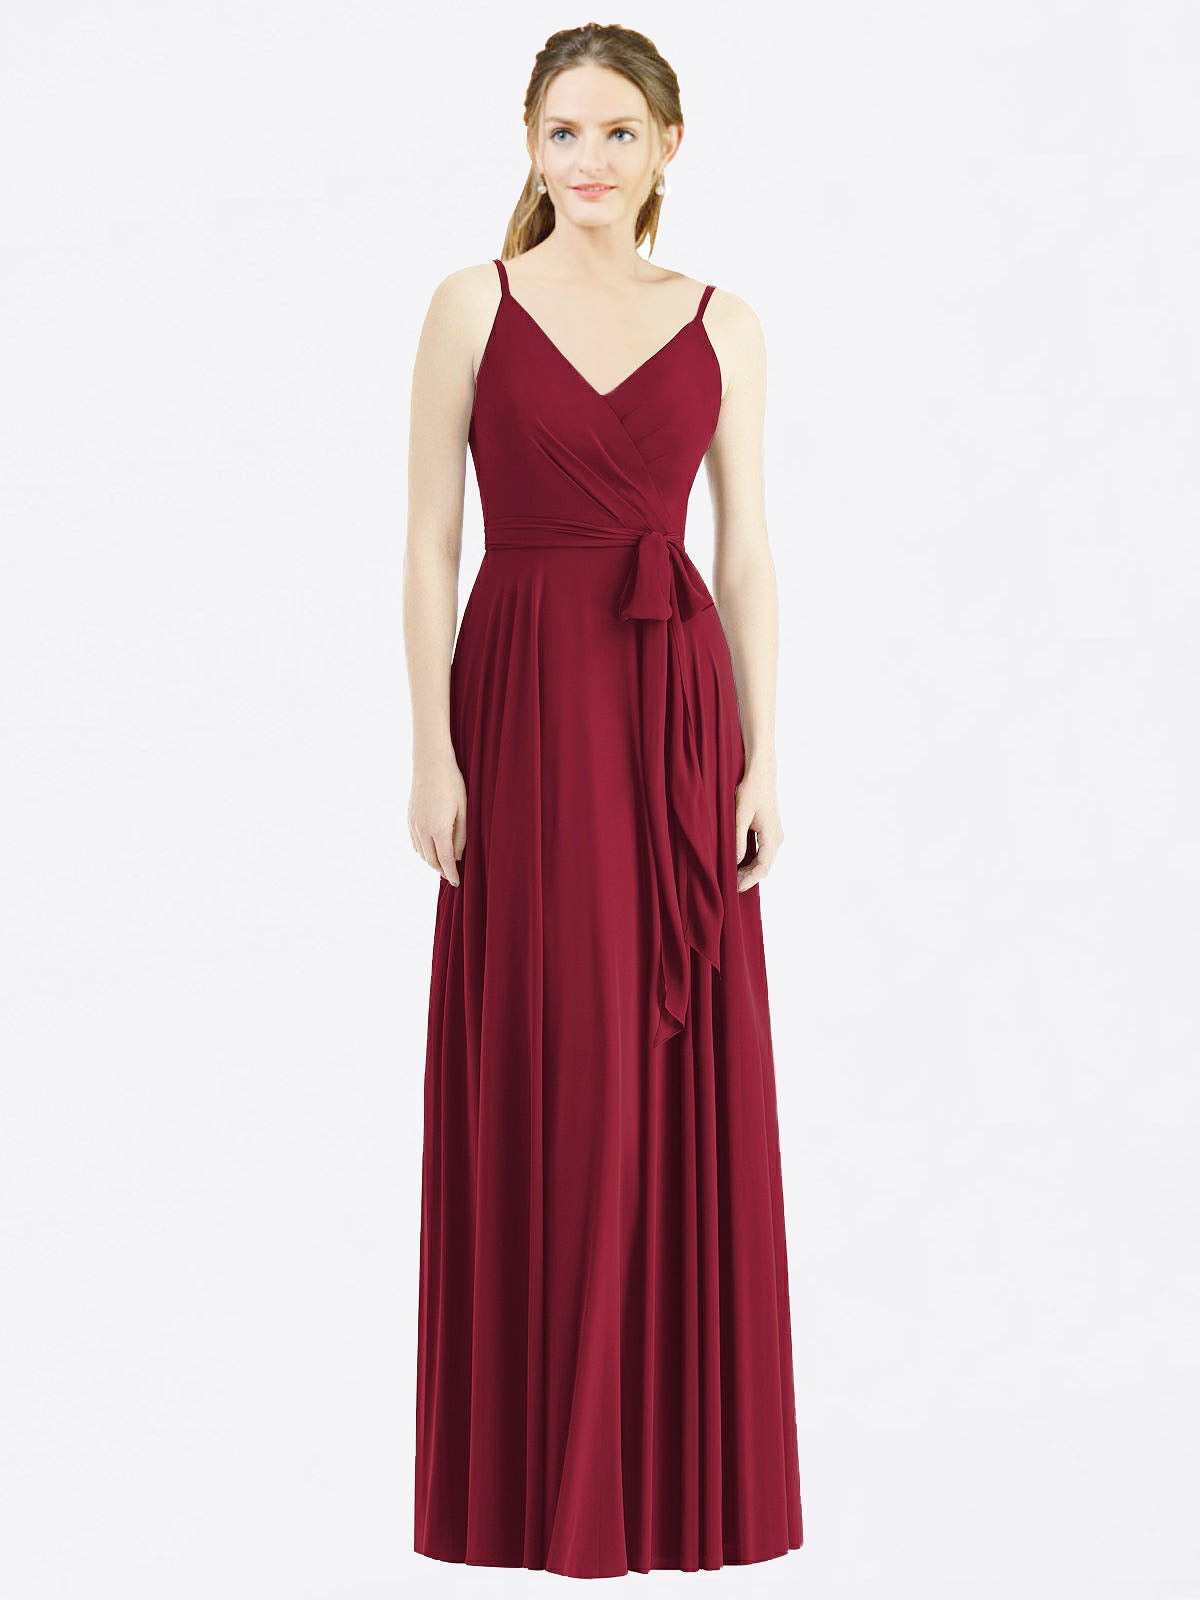 Long A-Line Spaghetti Straps, V-Neck Sleeveless Burgundy Chiffon Bridesmaid Dress Madilyn